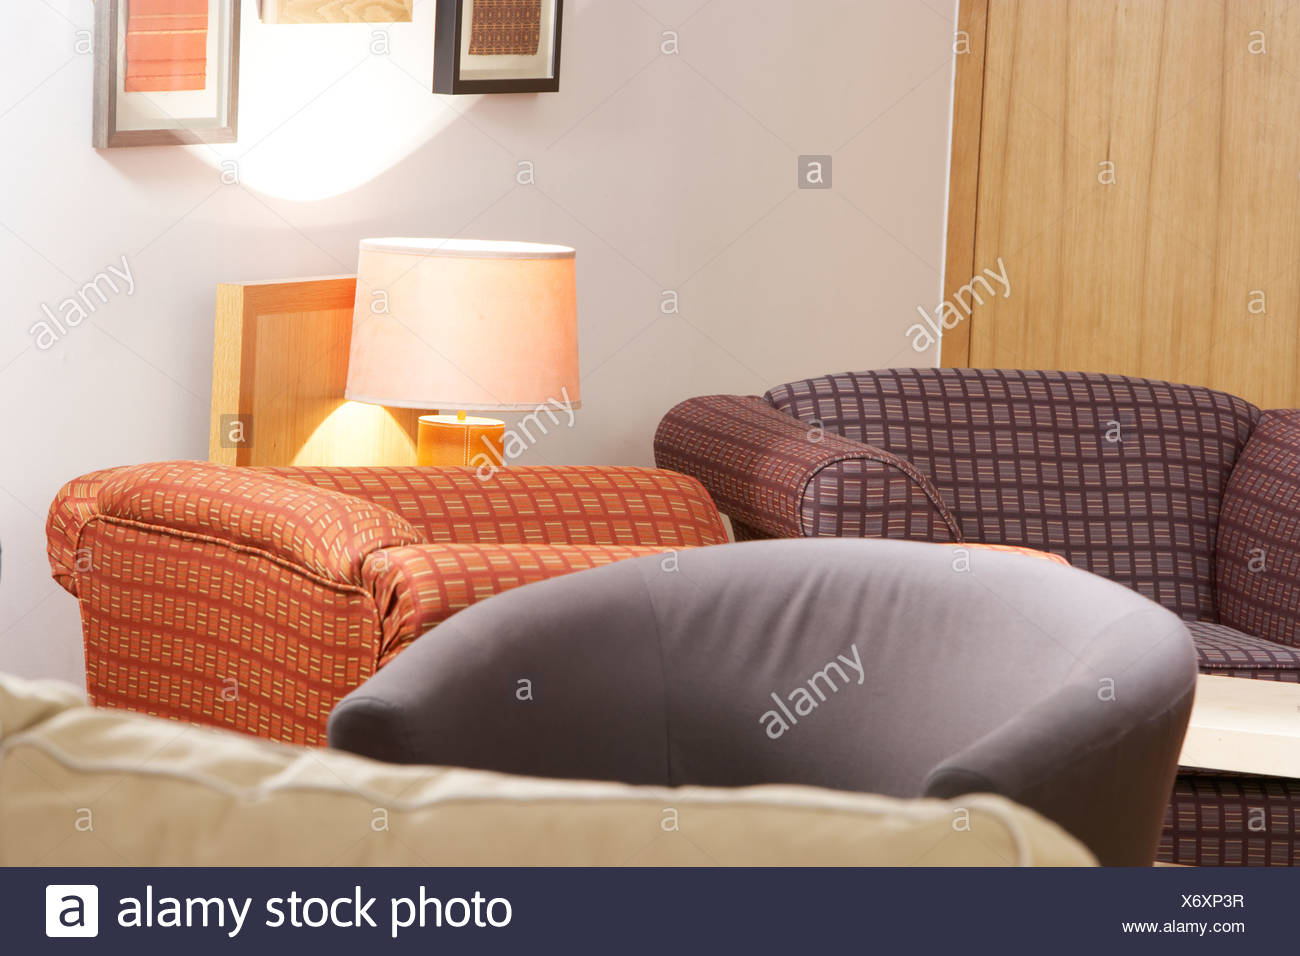 large comfy sofas in a restaurant - Stock Image